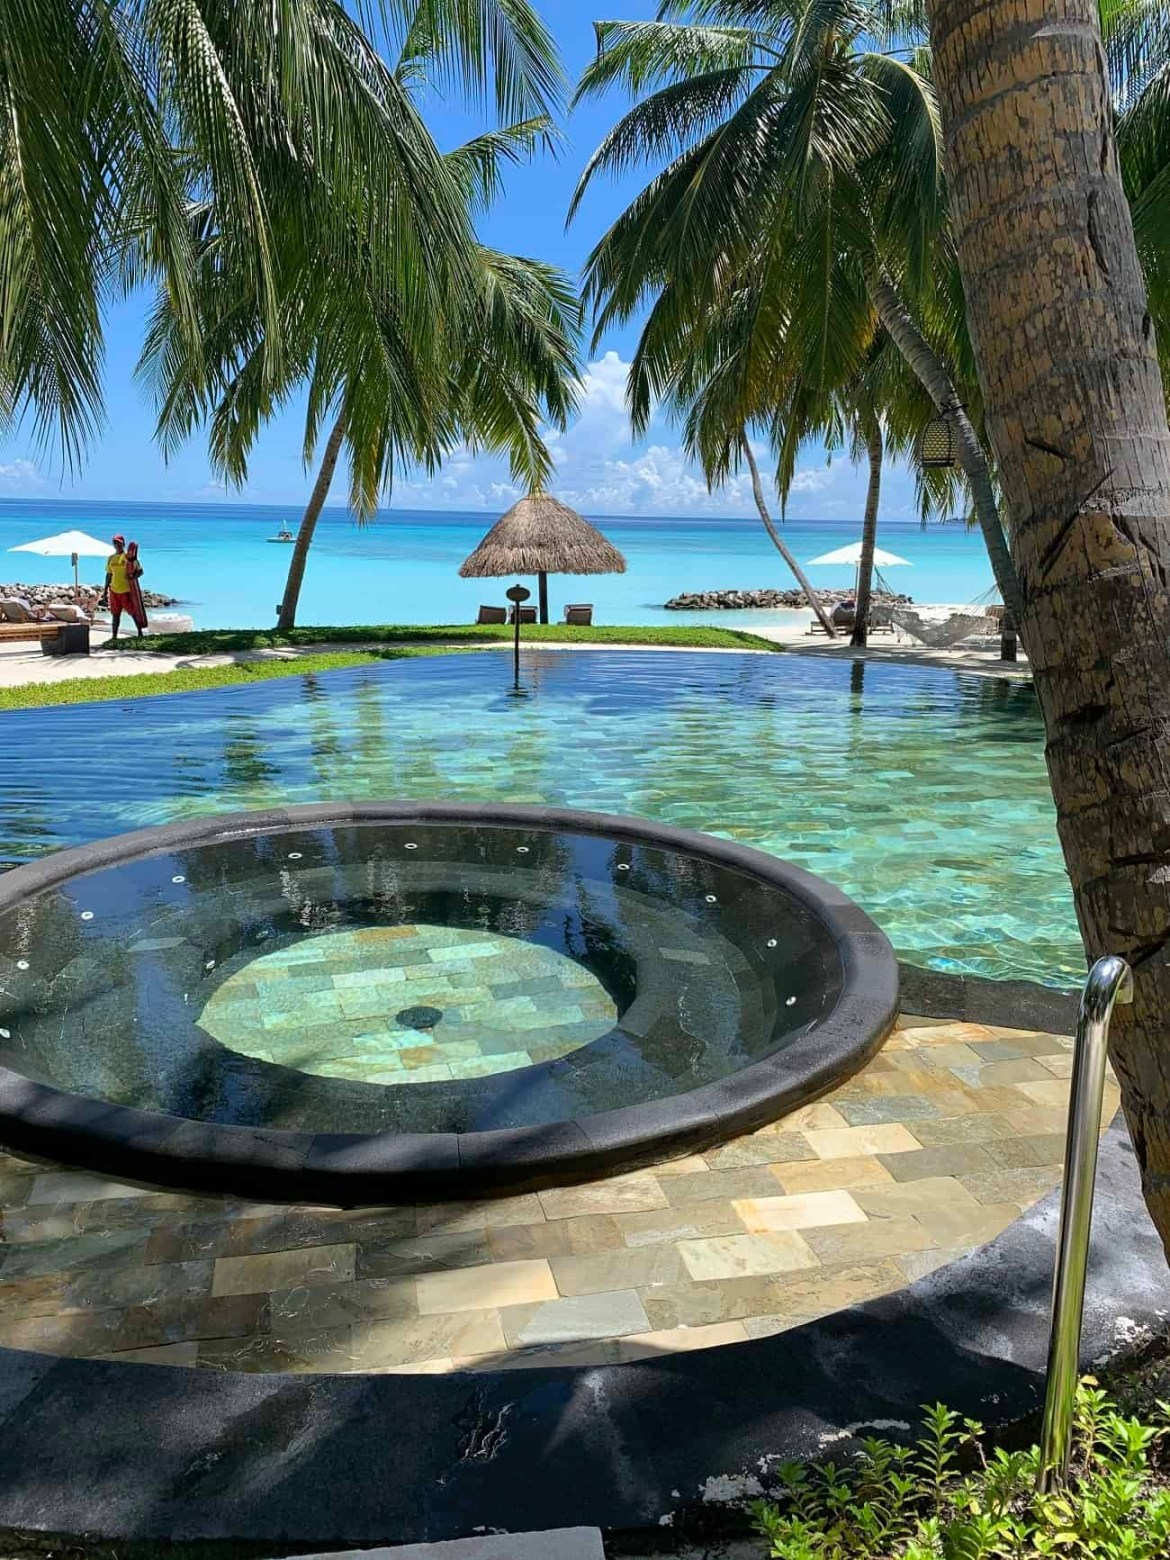 The pool at Reethi Rah